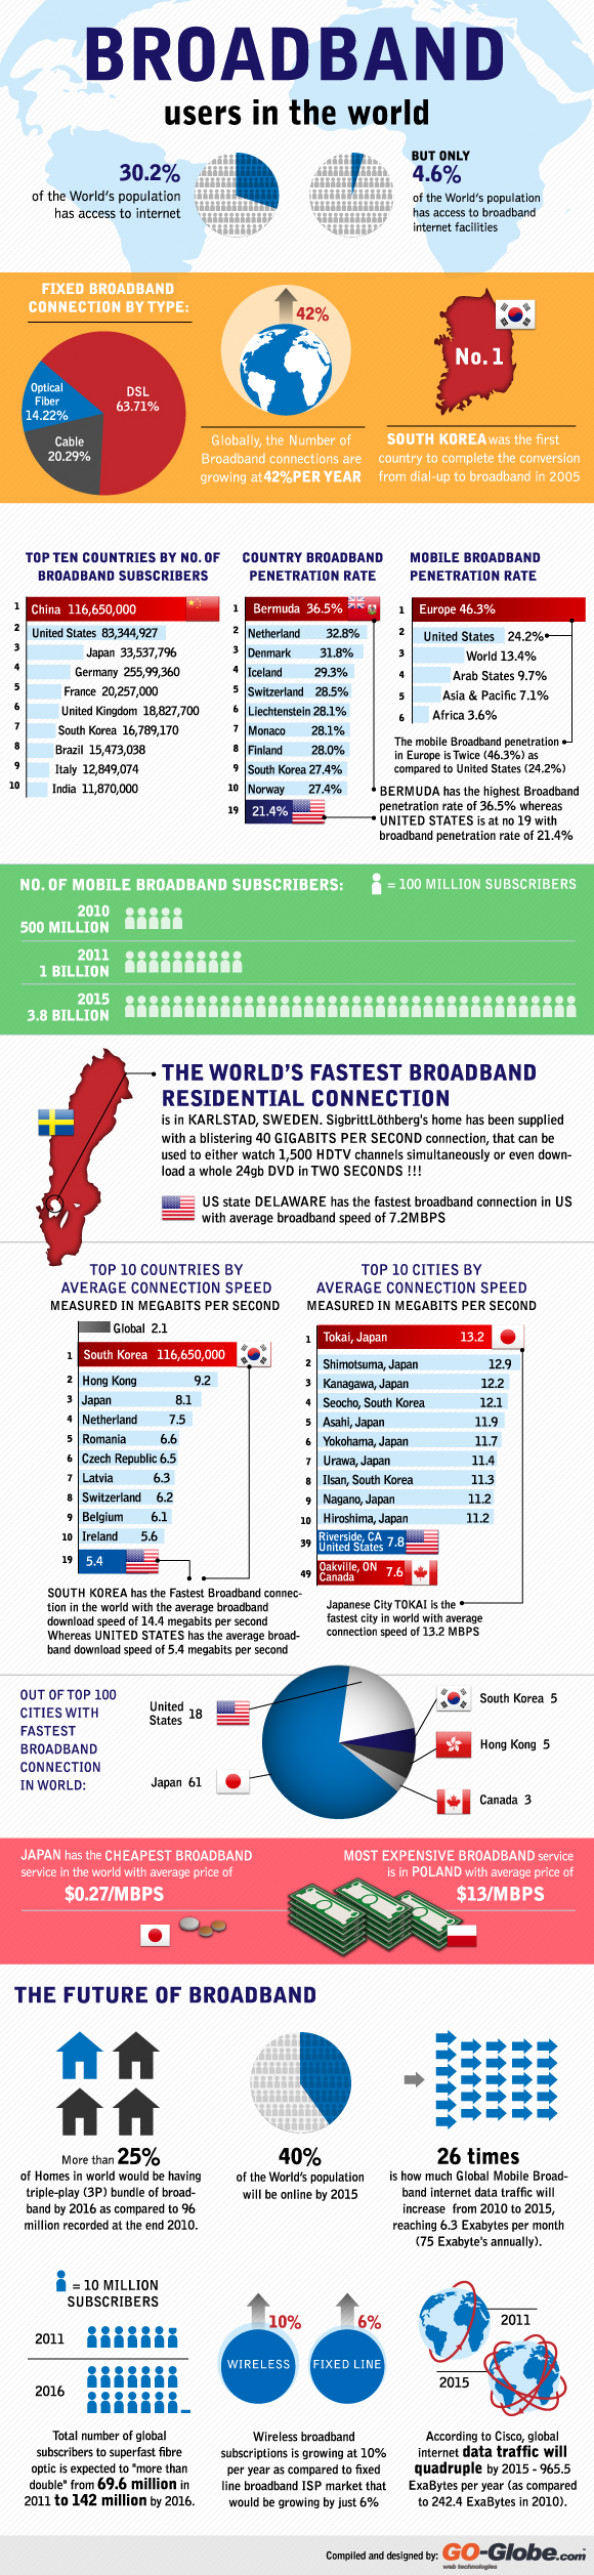 Broadband Users in the World Infographic